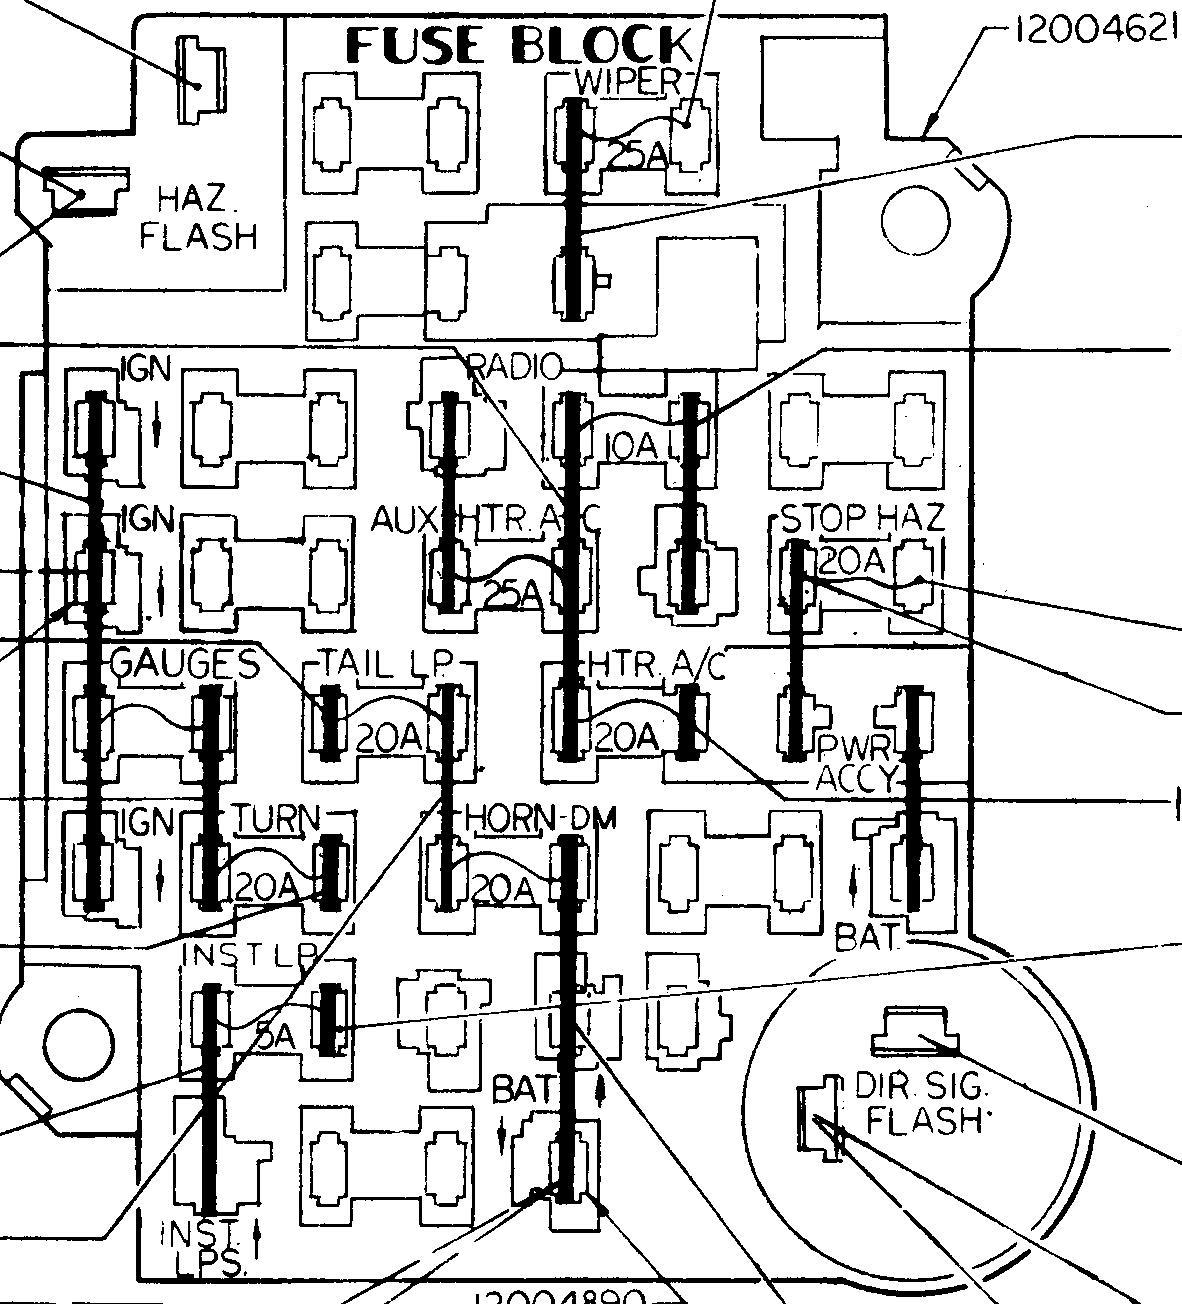 Gm Ato Style Fuse Block - Gm Alternator Wiring Diagram